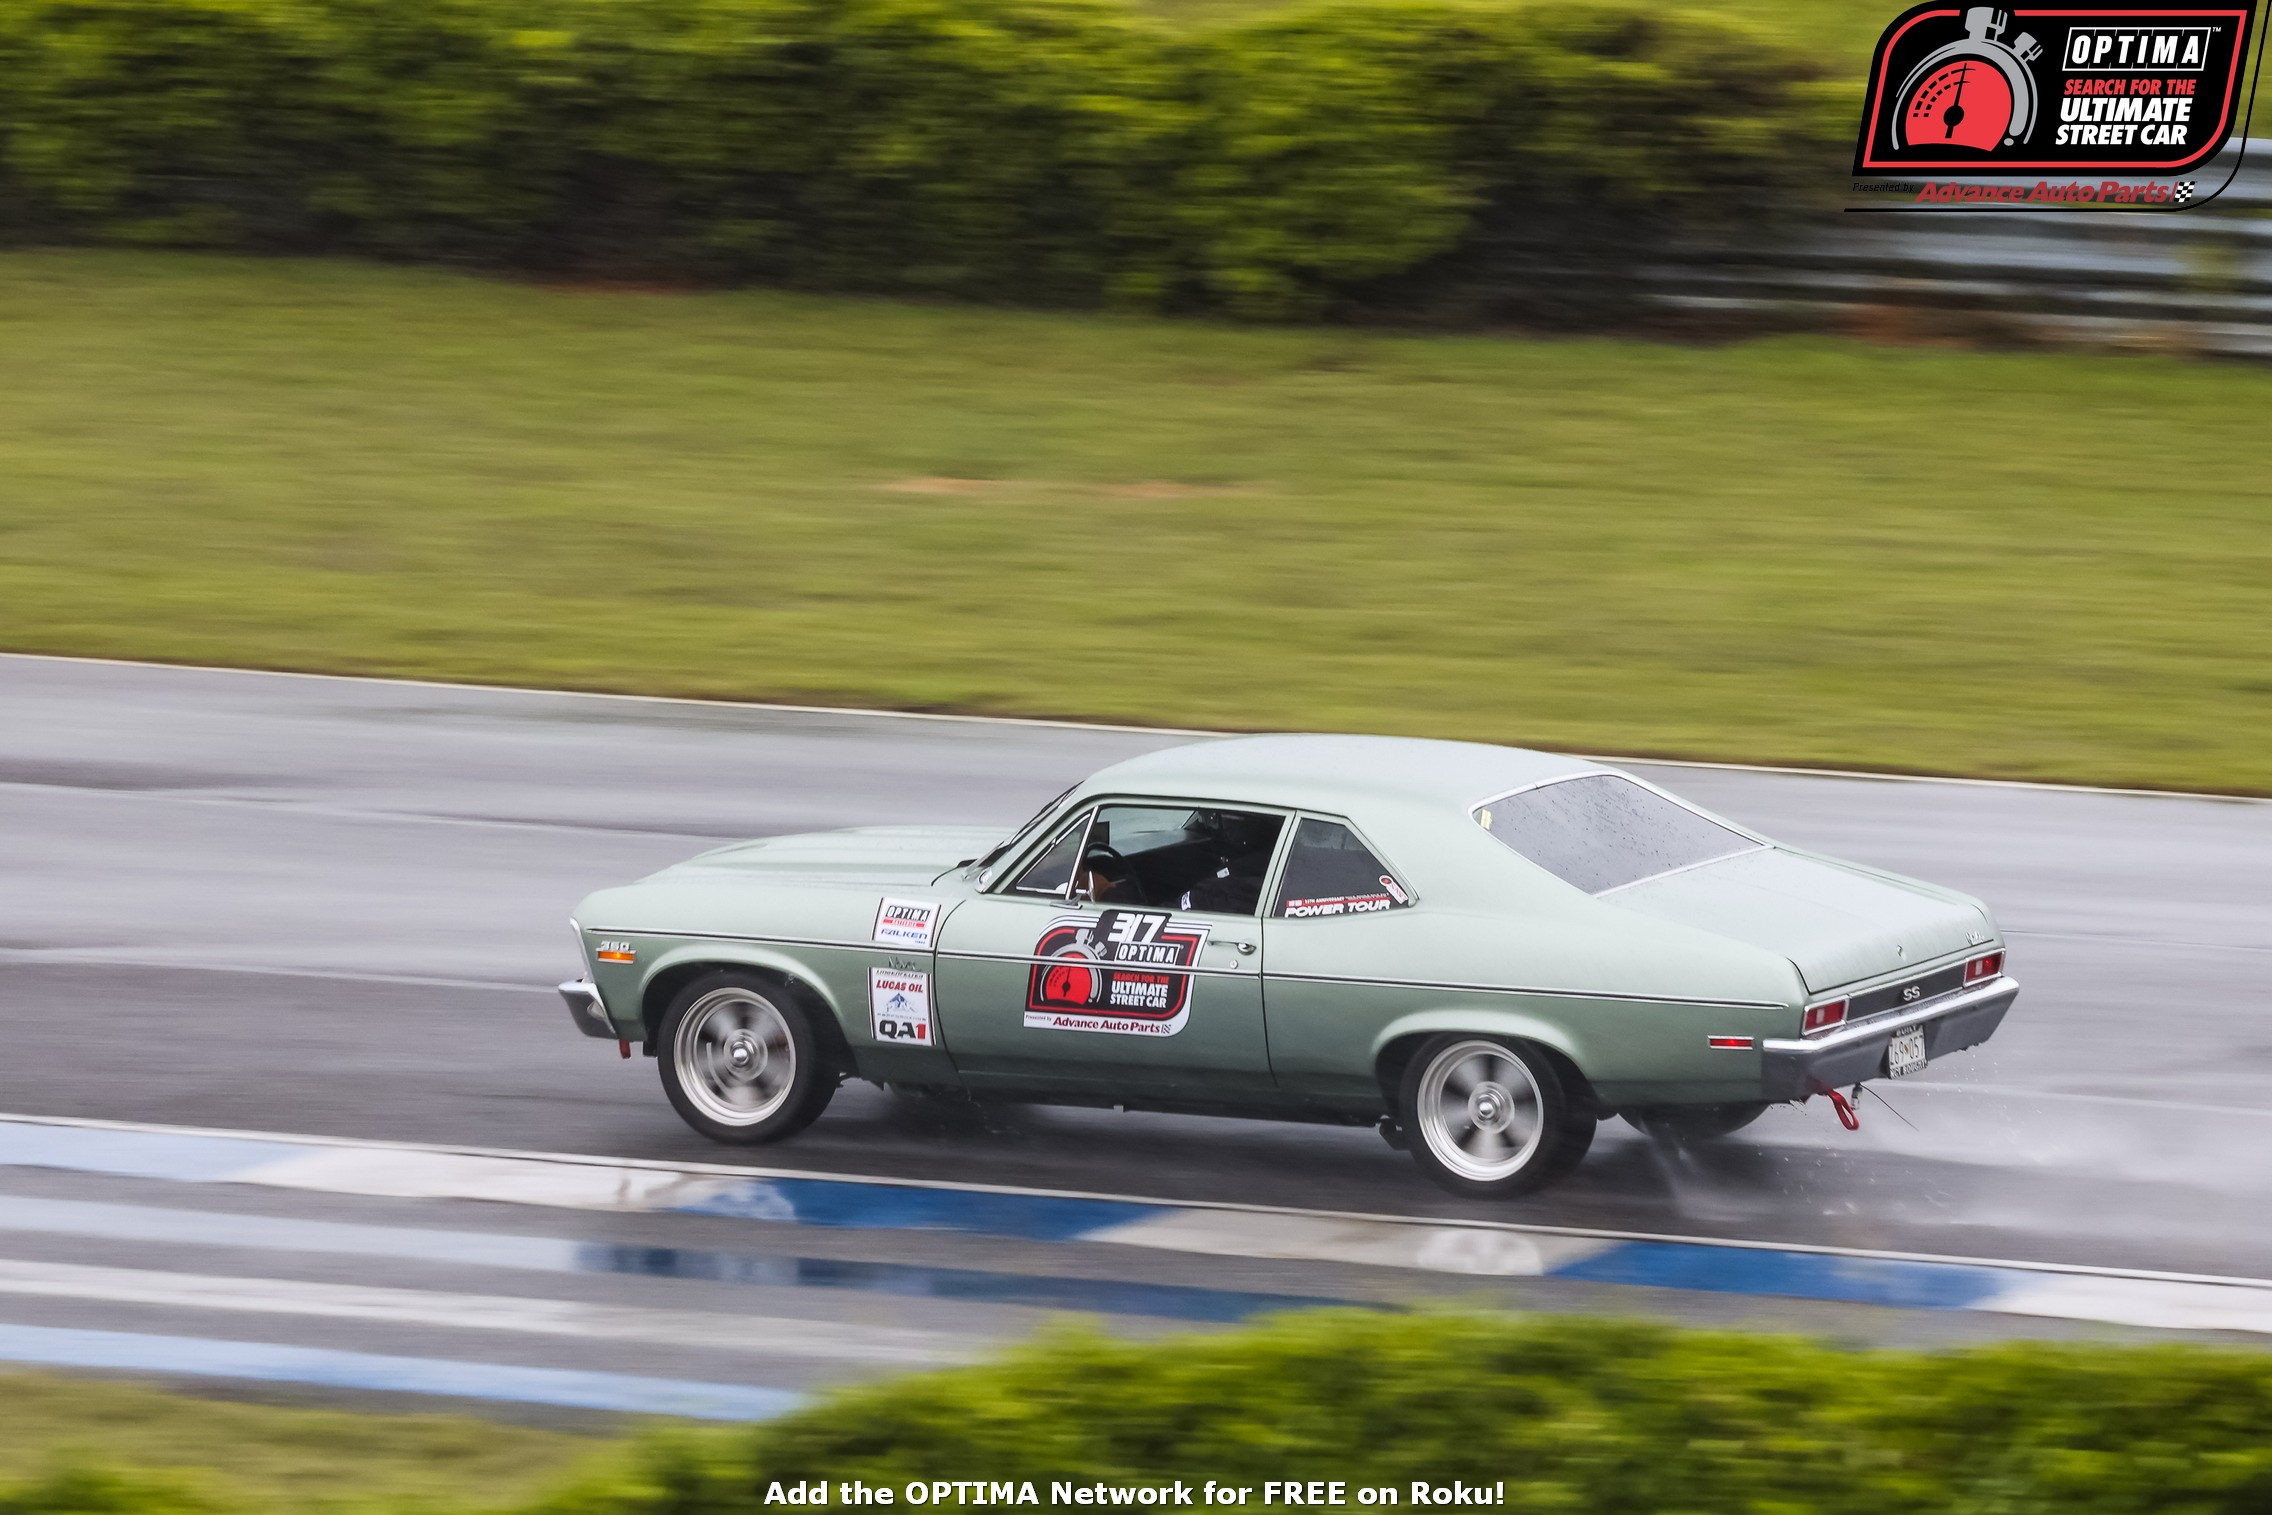 The Numbers Game: Chasing Points In OPTIMA's Search For The Ultimate Street Car Series